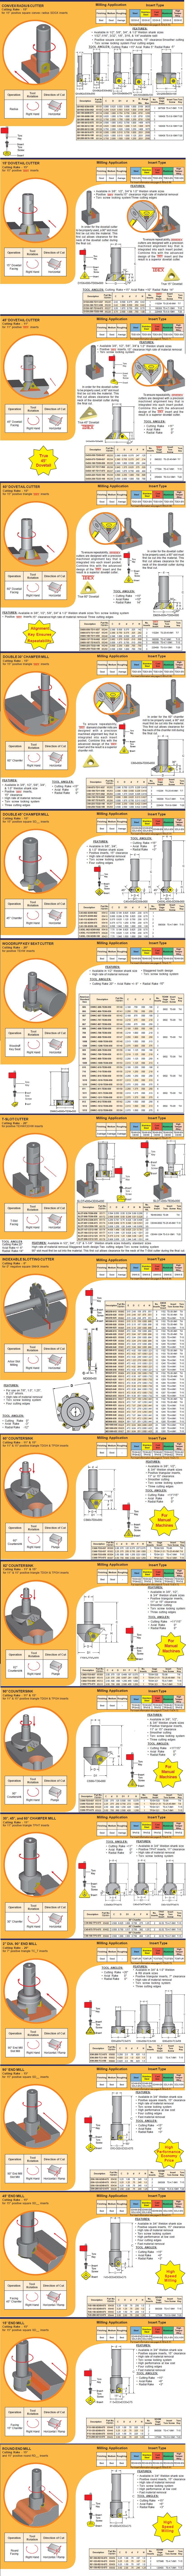 Indexable Carbide End, Face, Shoulder & High Feed Mills, Special Purpose